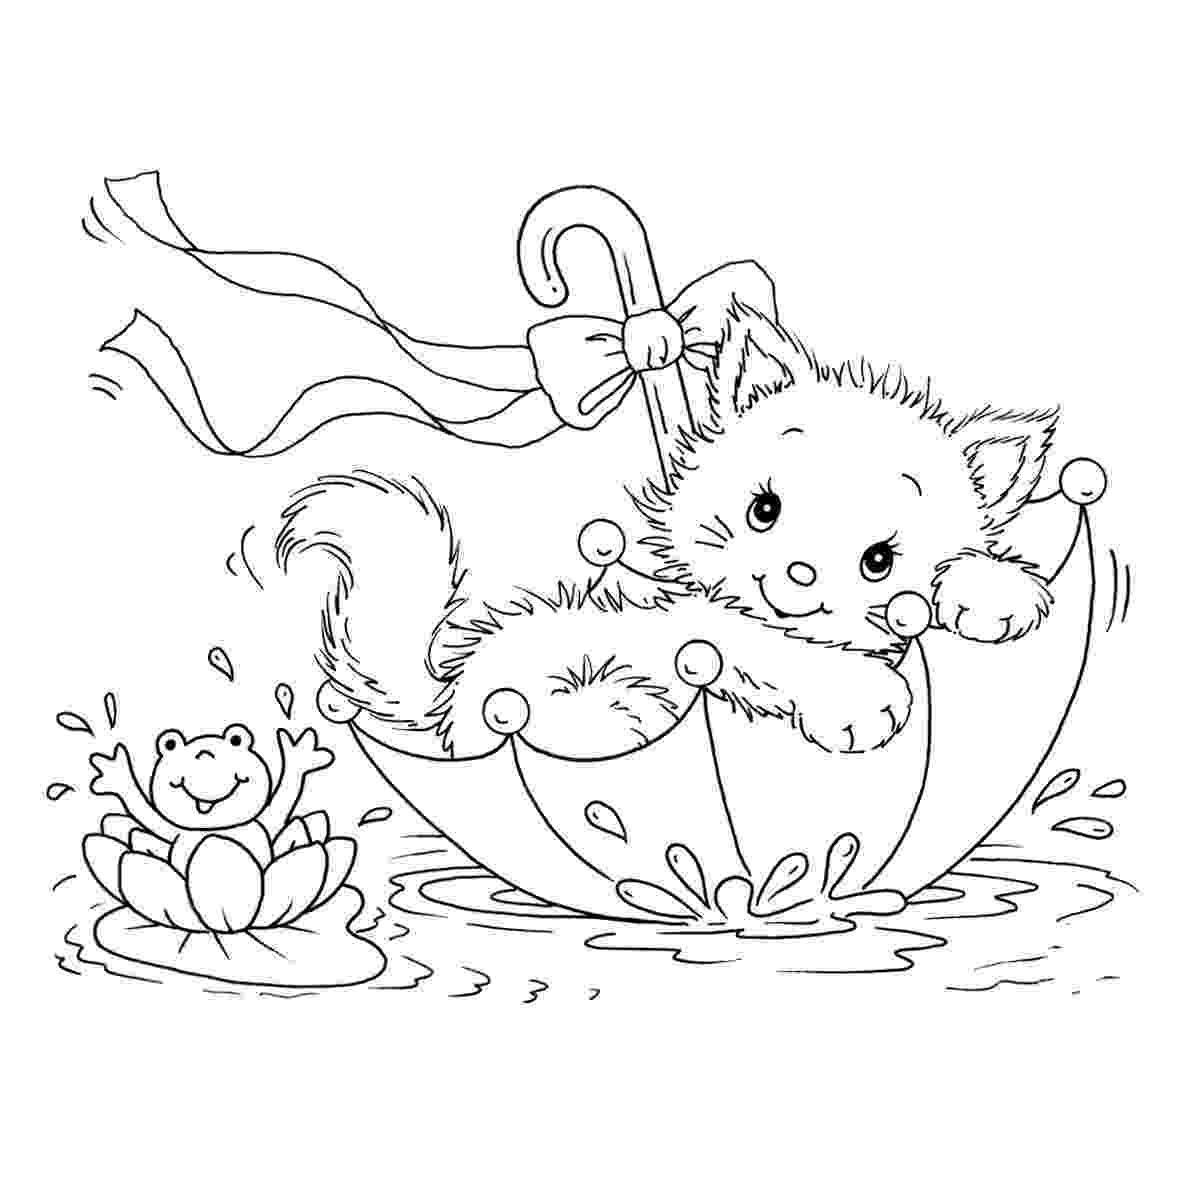 coloring pages of kittens javanese kitten coloring page free printable coloring pages kittens coloring of pages